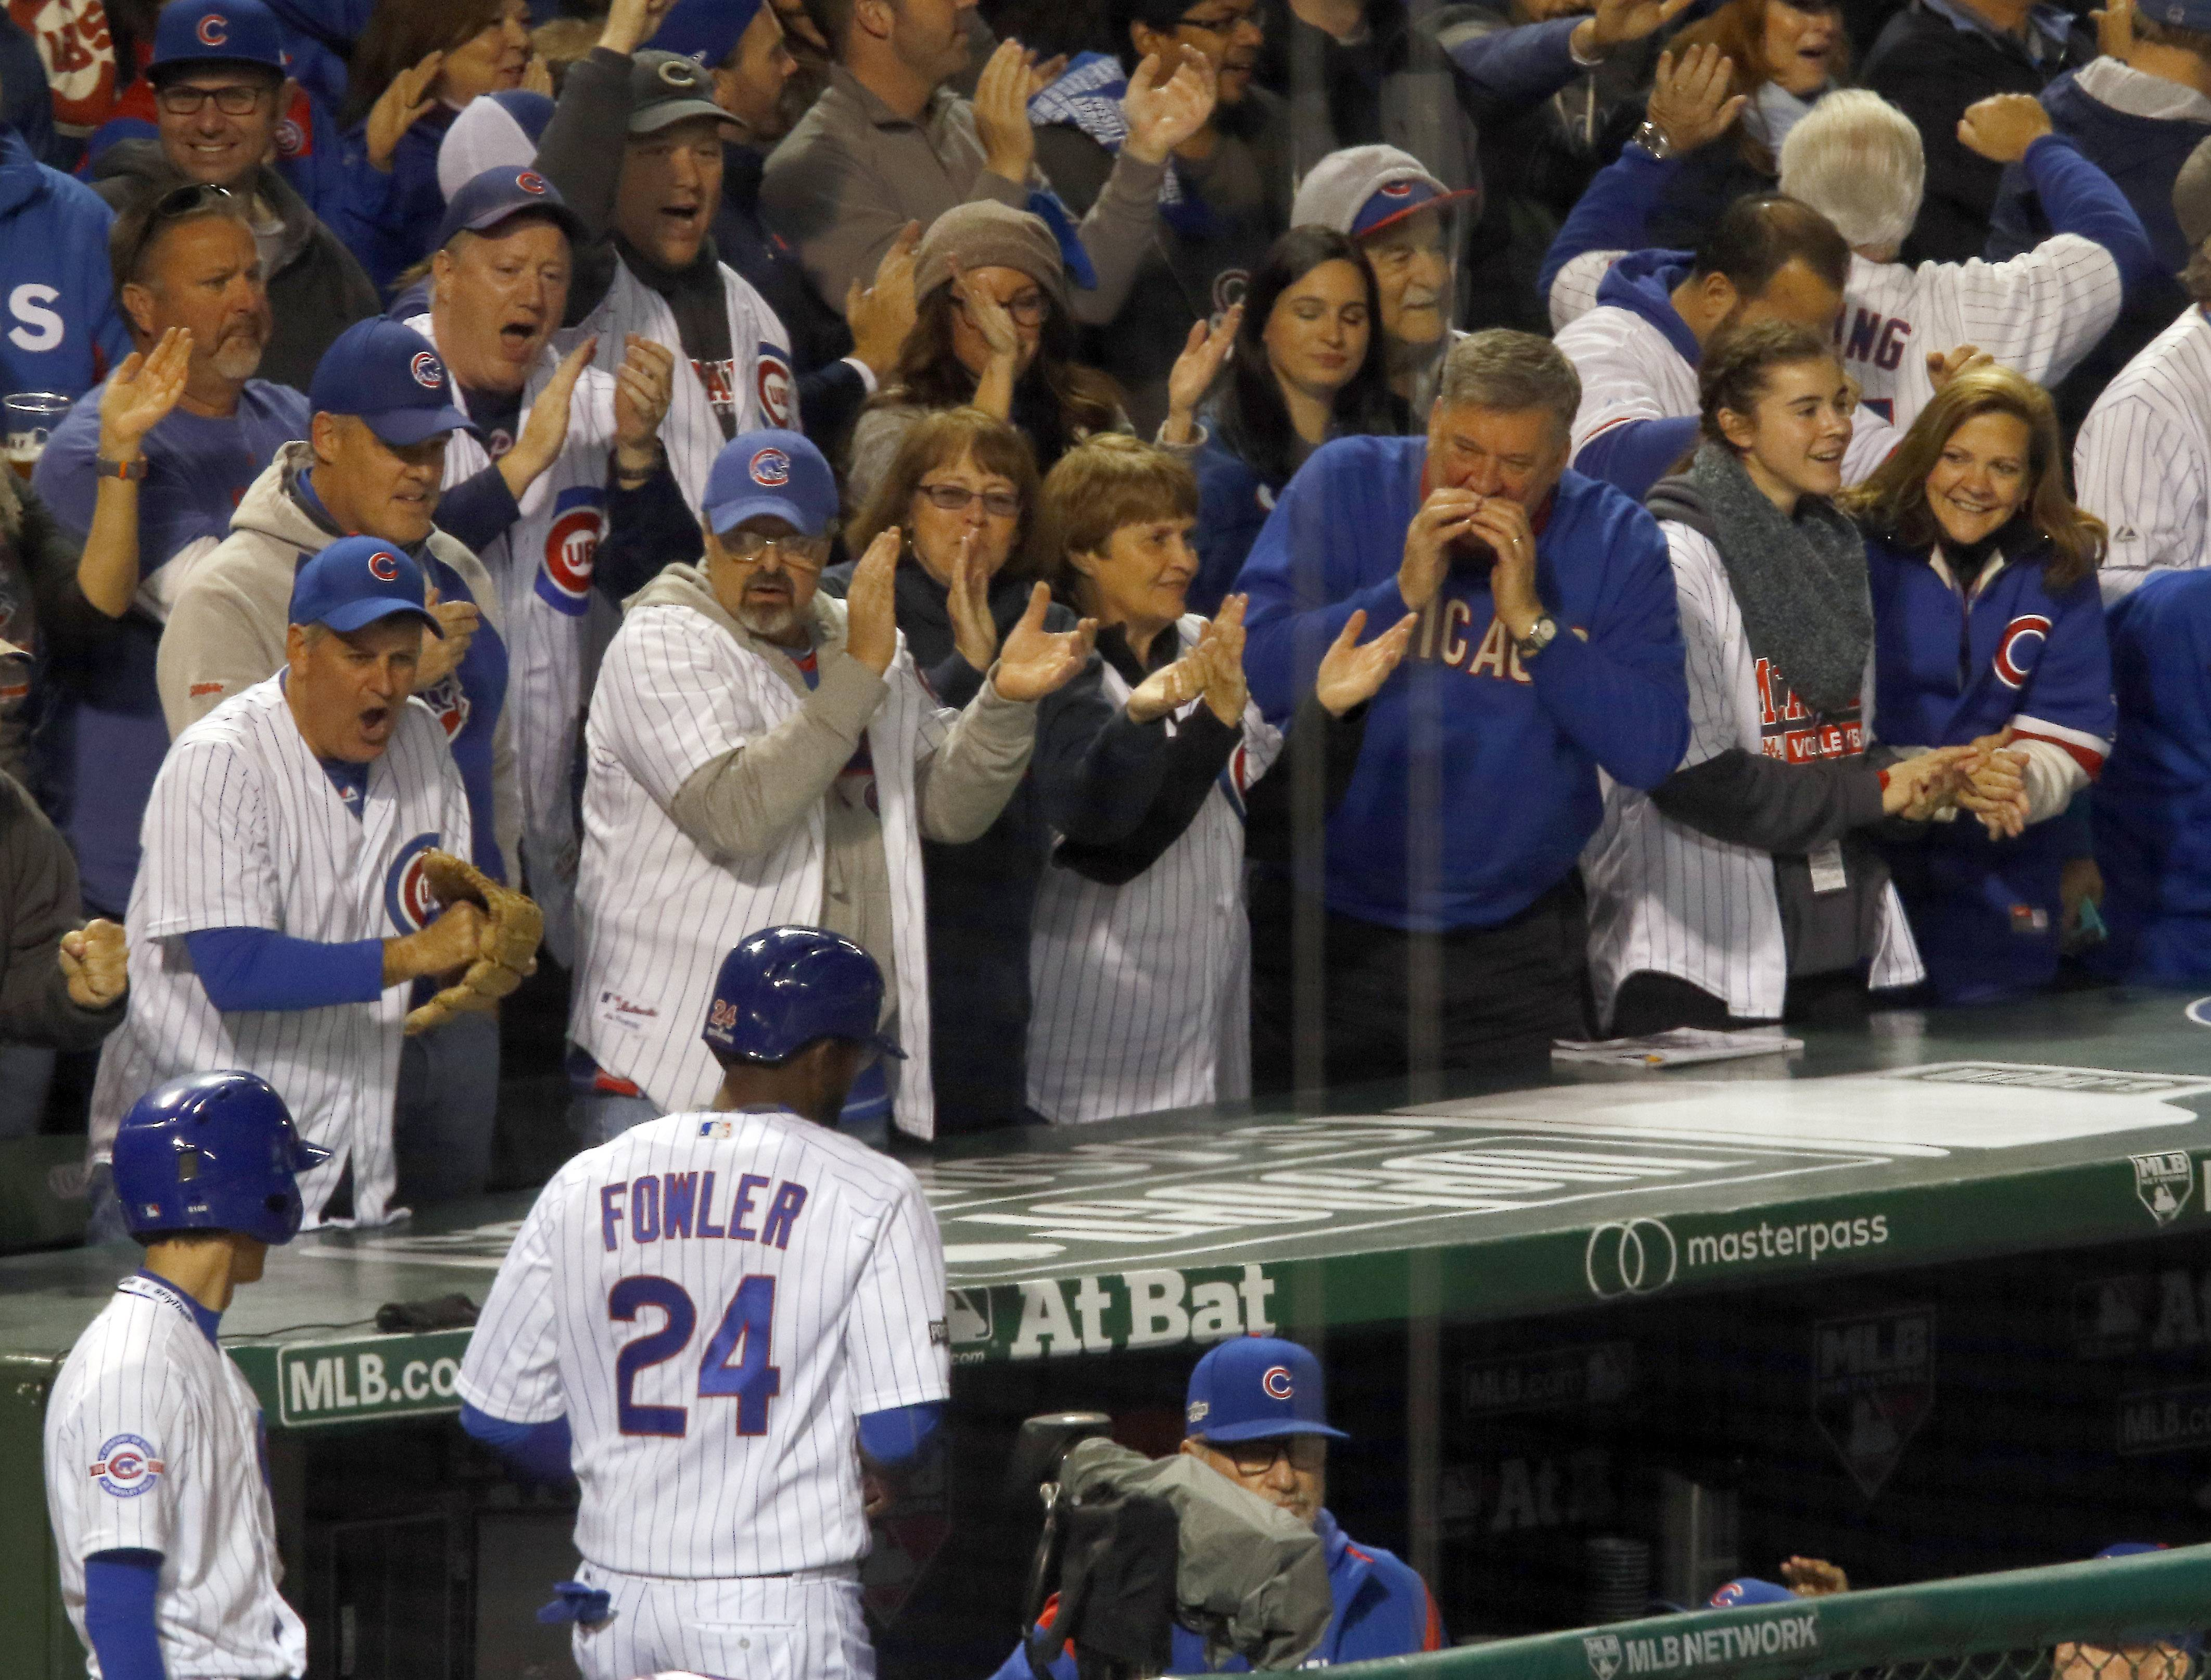 Chicago Cubs fans figure to have plenty to cheer about for years to come as their team begins the World Series tonight in Cleveland.